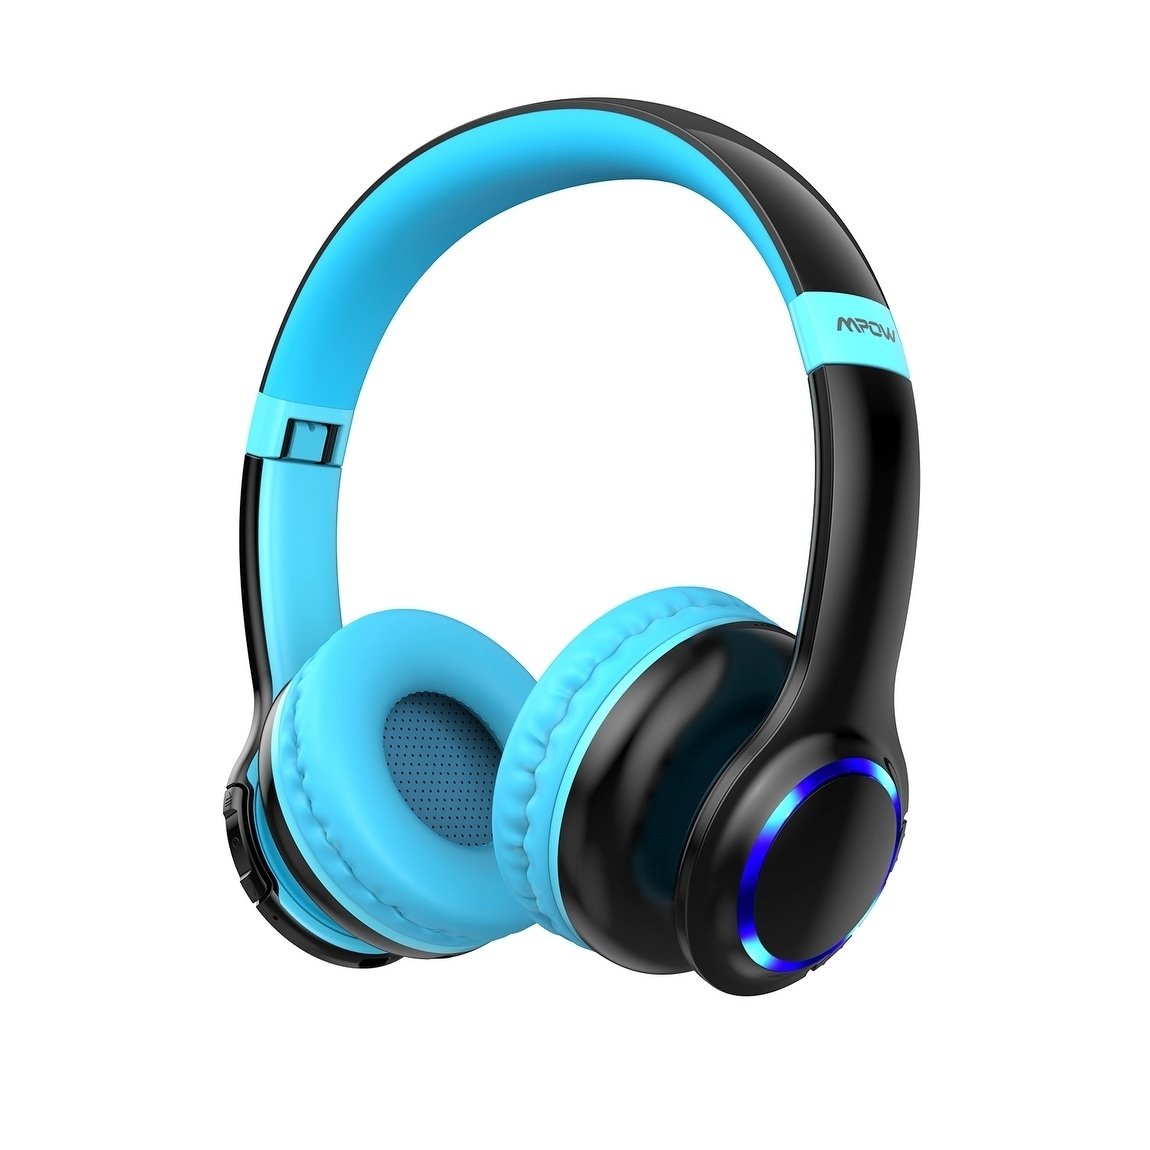 Shop Mpow Ch9 Bluetooth 5 0 Kids Headphones With Led Light On Ear Wireless Headphones Foldable Headset For Children Overstock 29817296